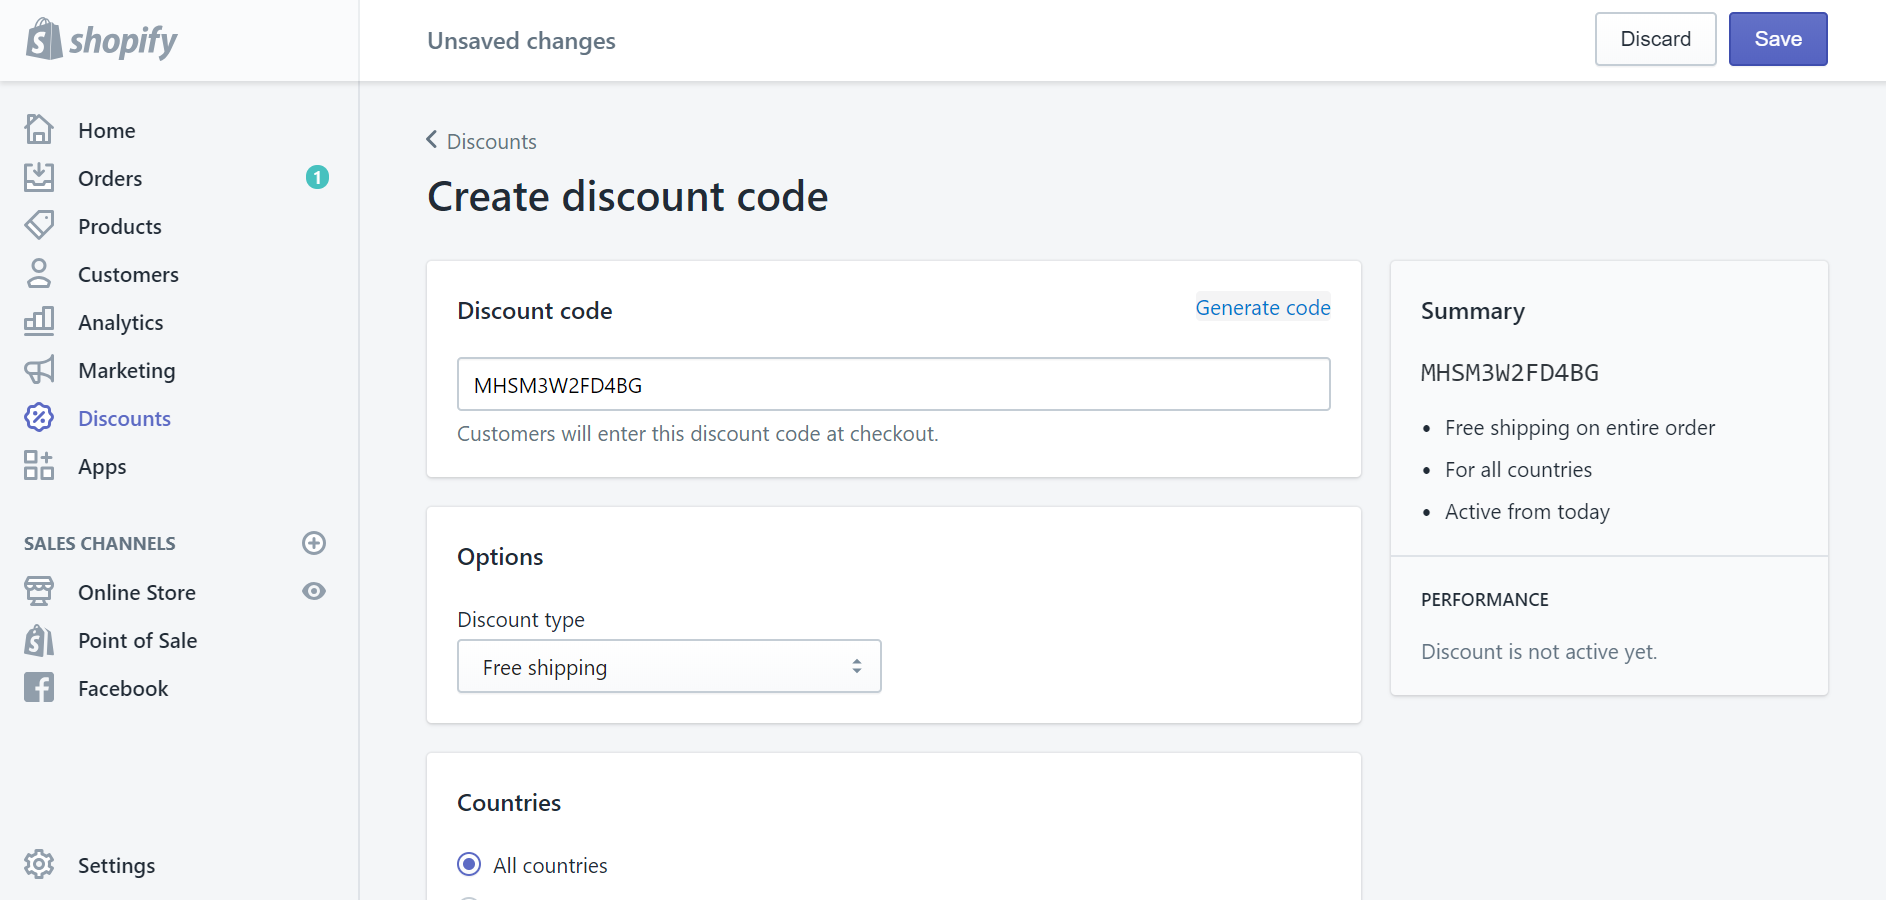 How to create a free shipping discount